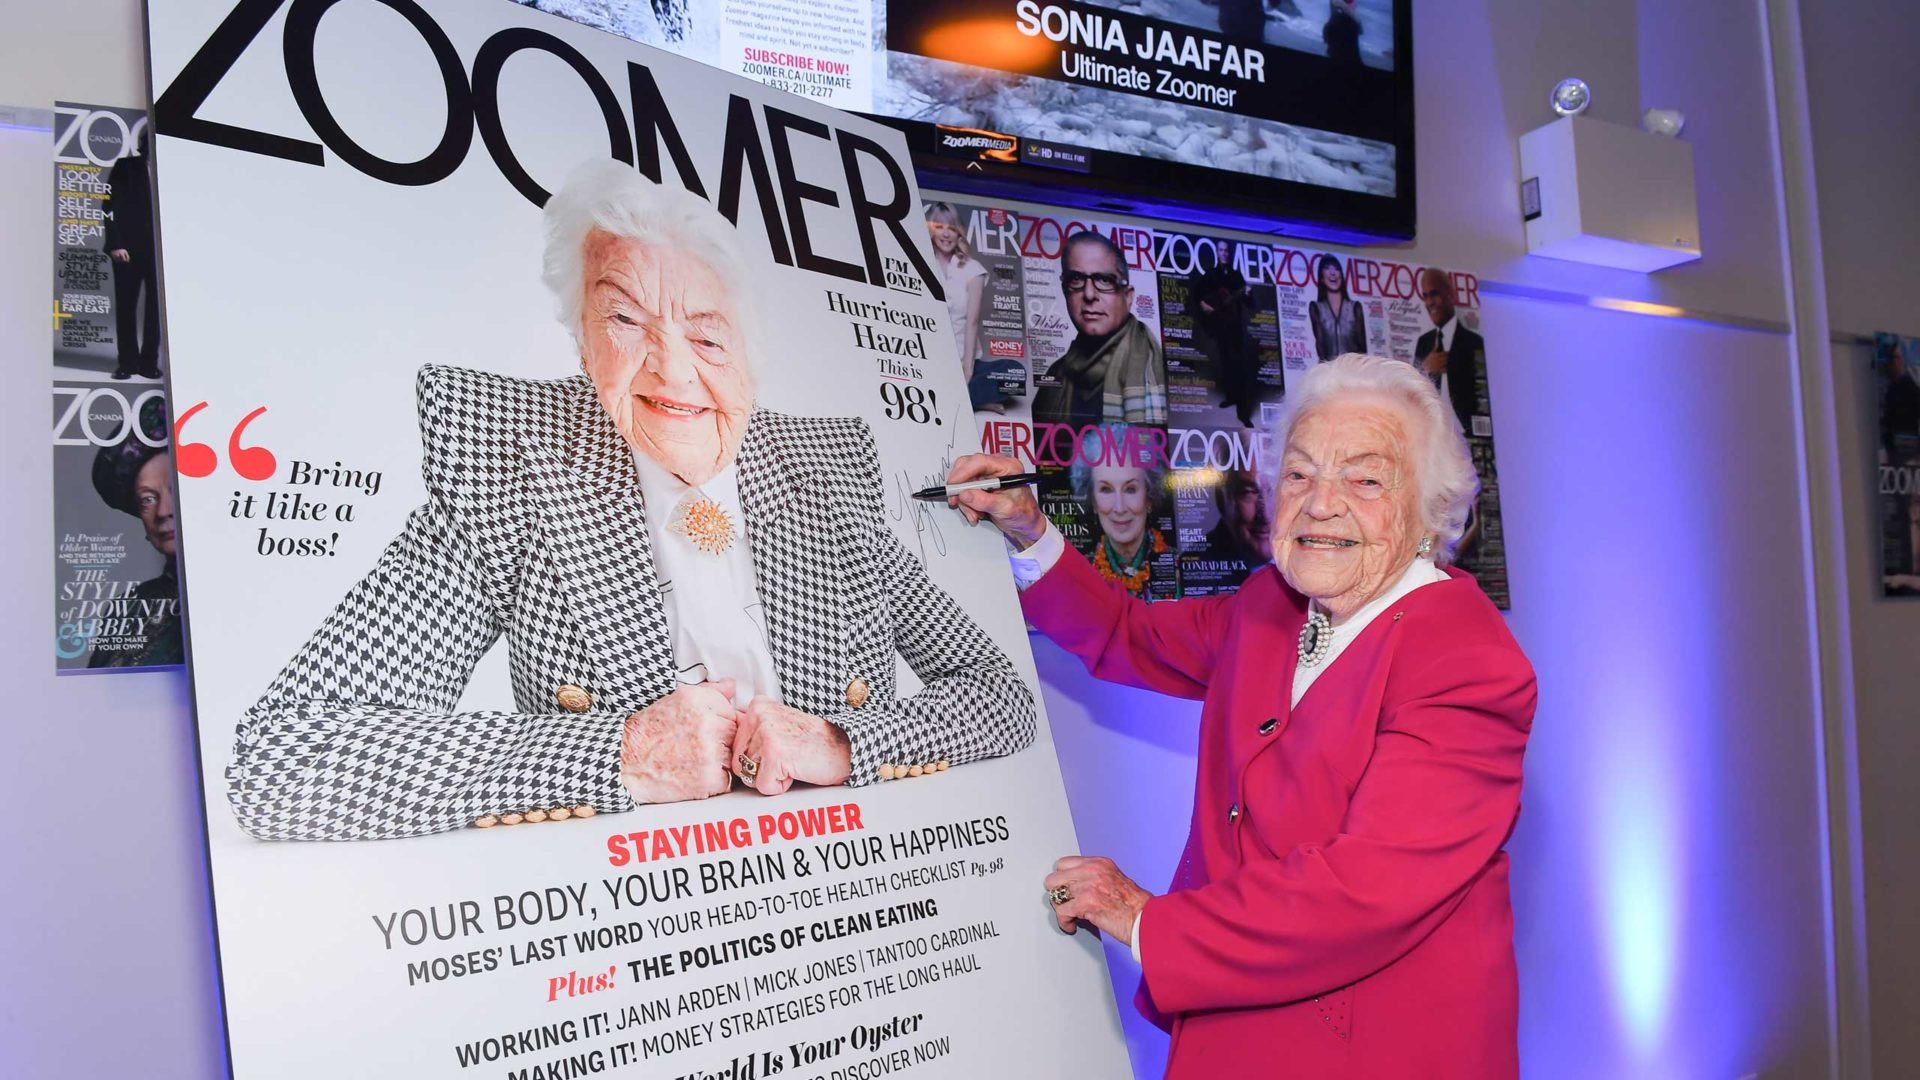 Hazel McCallion signs Zoomer Magazine Cover May 2019 issue. Photo by George Pimentel